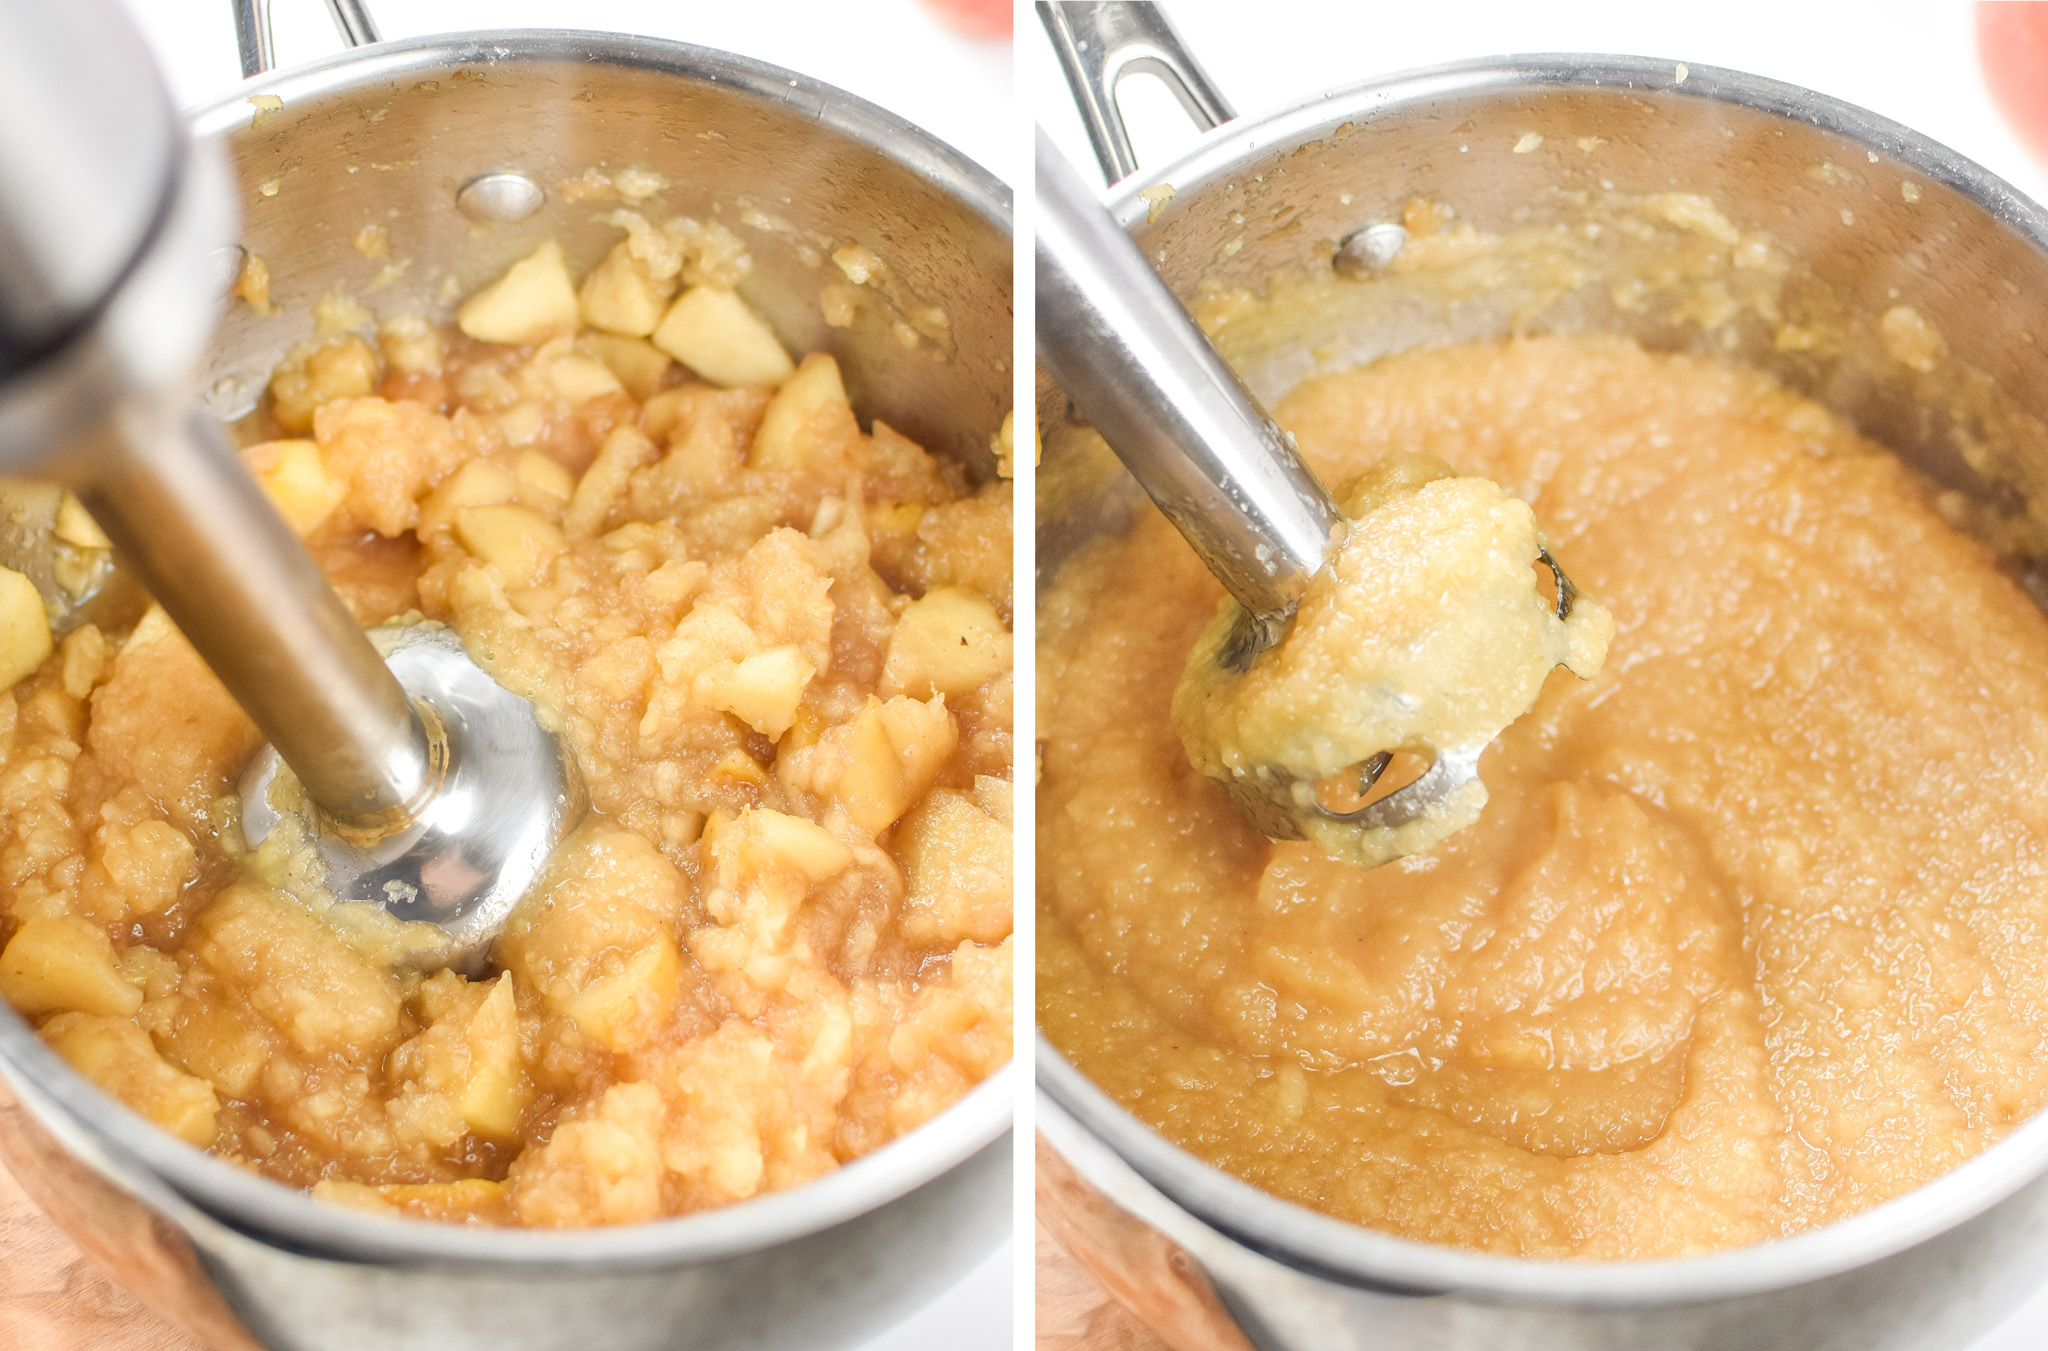 Left: Cooked apples about to be blended. Right: Apples blended into applesauce. Store Bought vs Homemade Applesauce: Which is Cheaper?